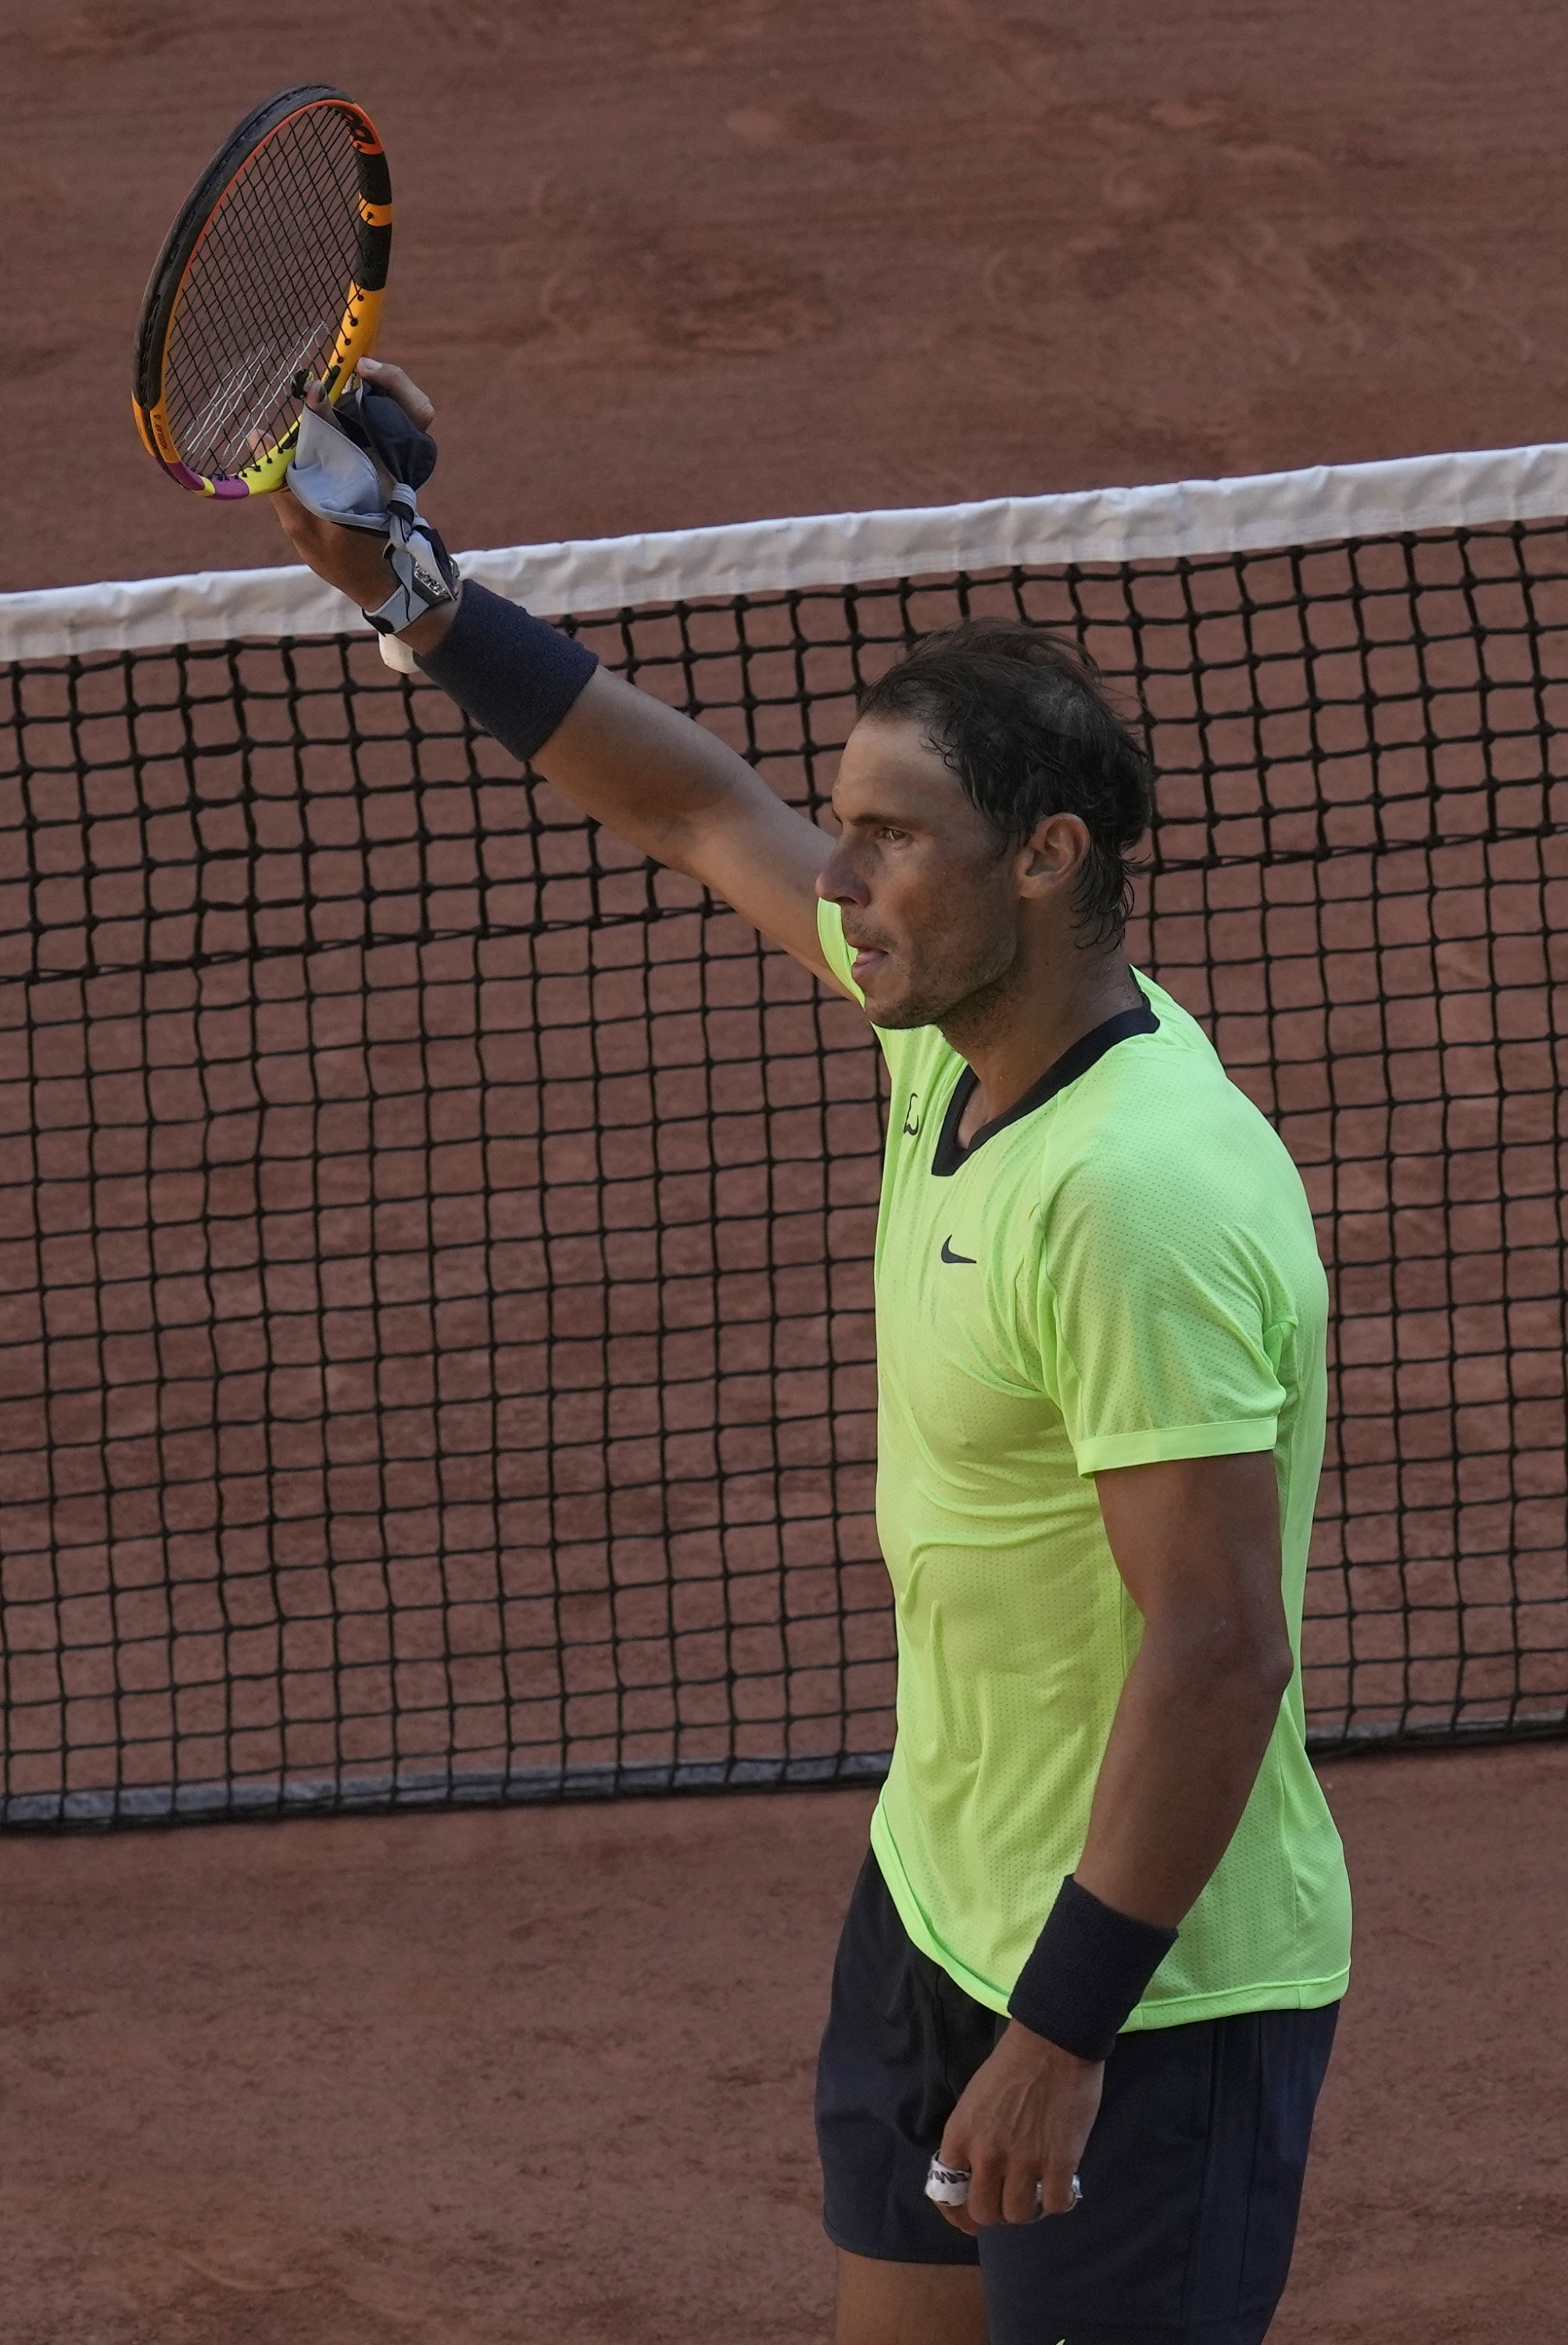 Spain's Rafael Nadal celebrates after defeating Australia's Alexei Popyrin in their French Open first round at Roland Garros in Paris, France, June 1, 2021. (AP Photo)